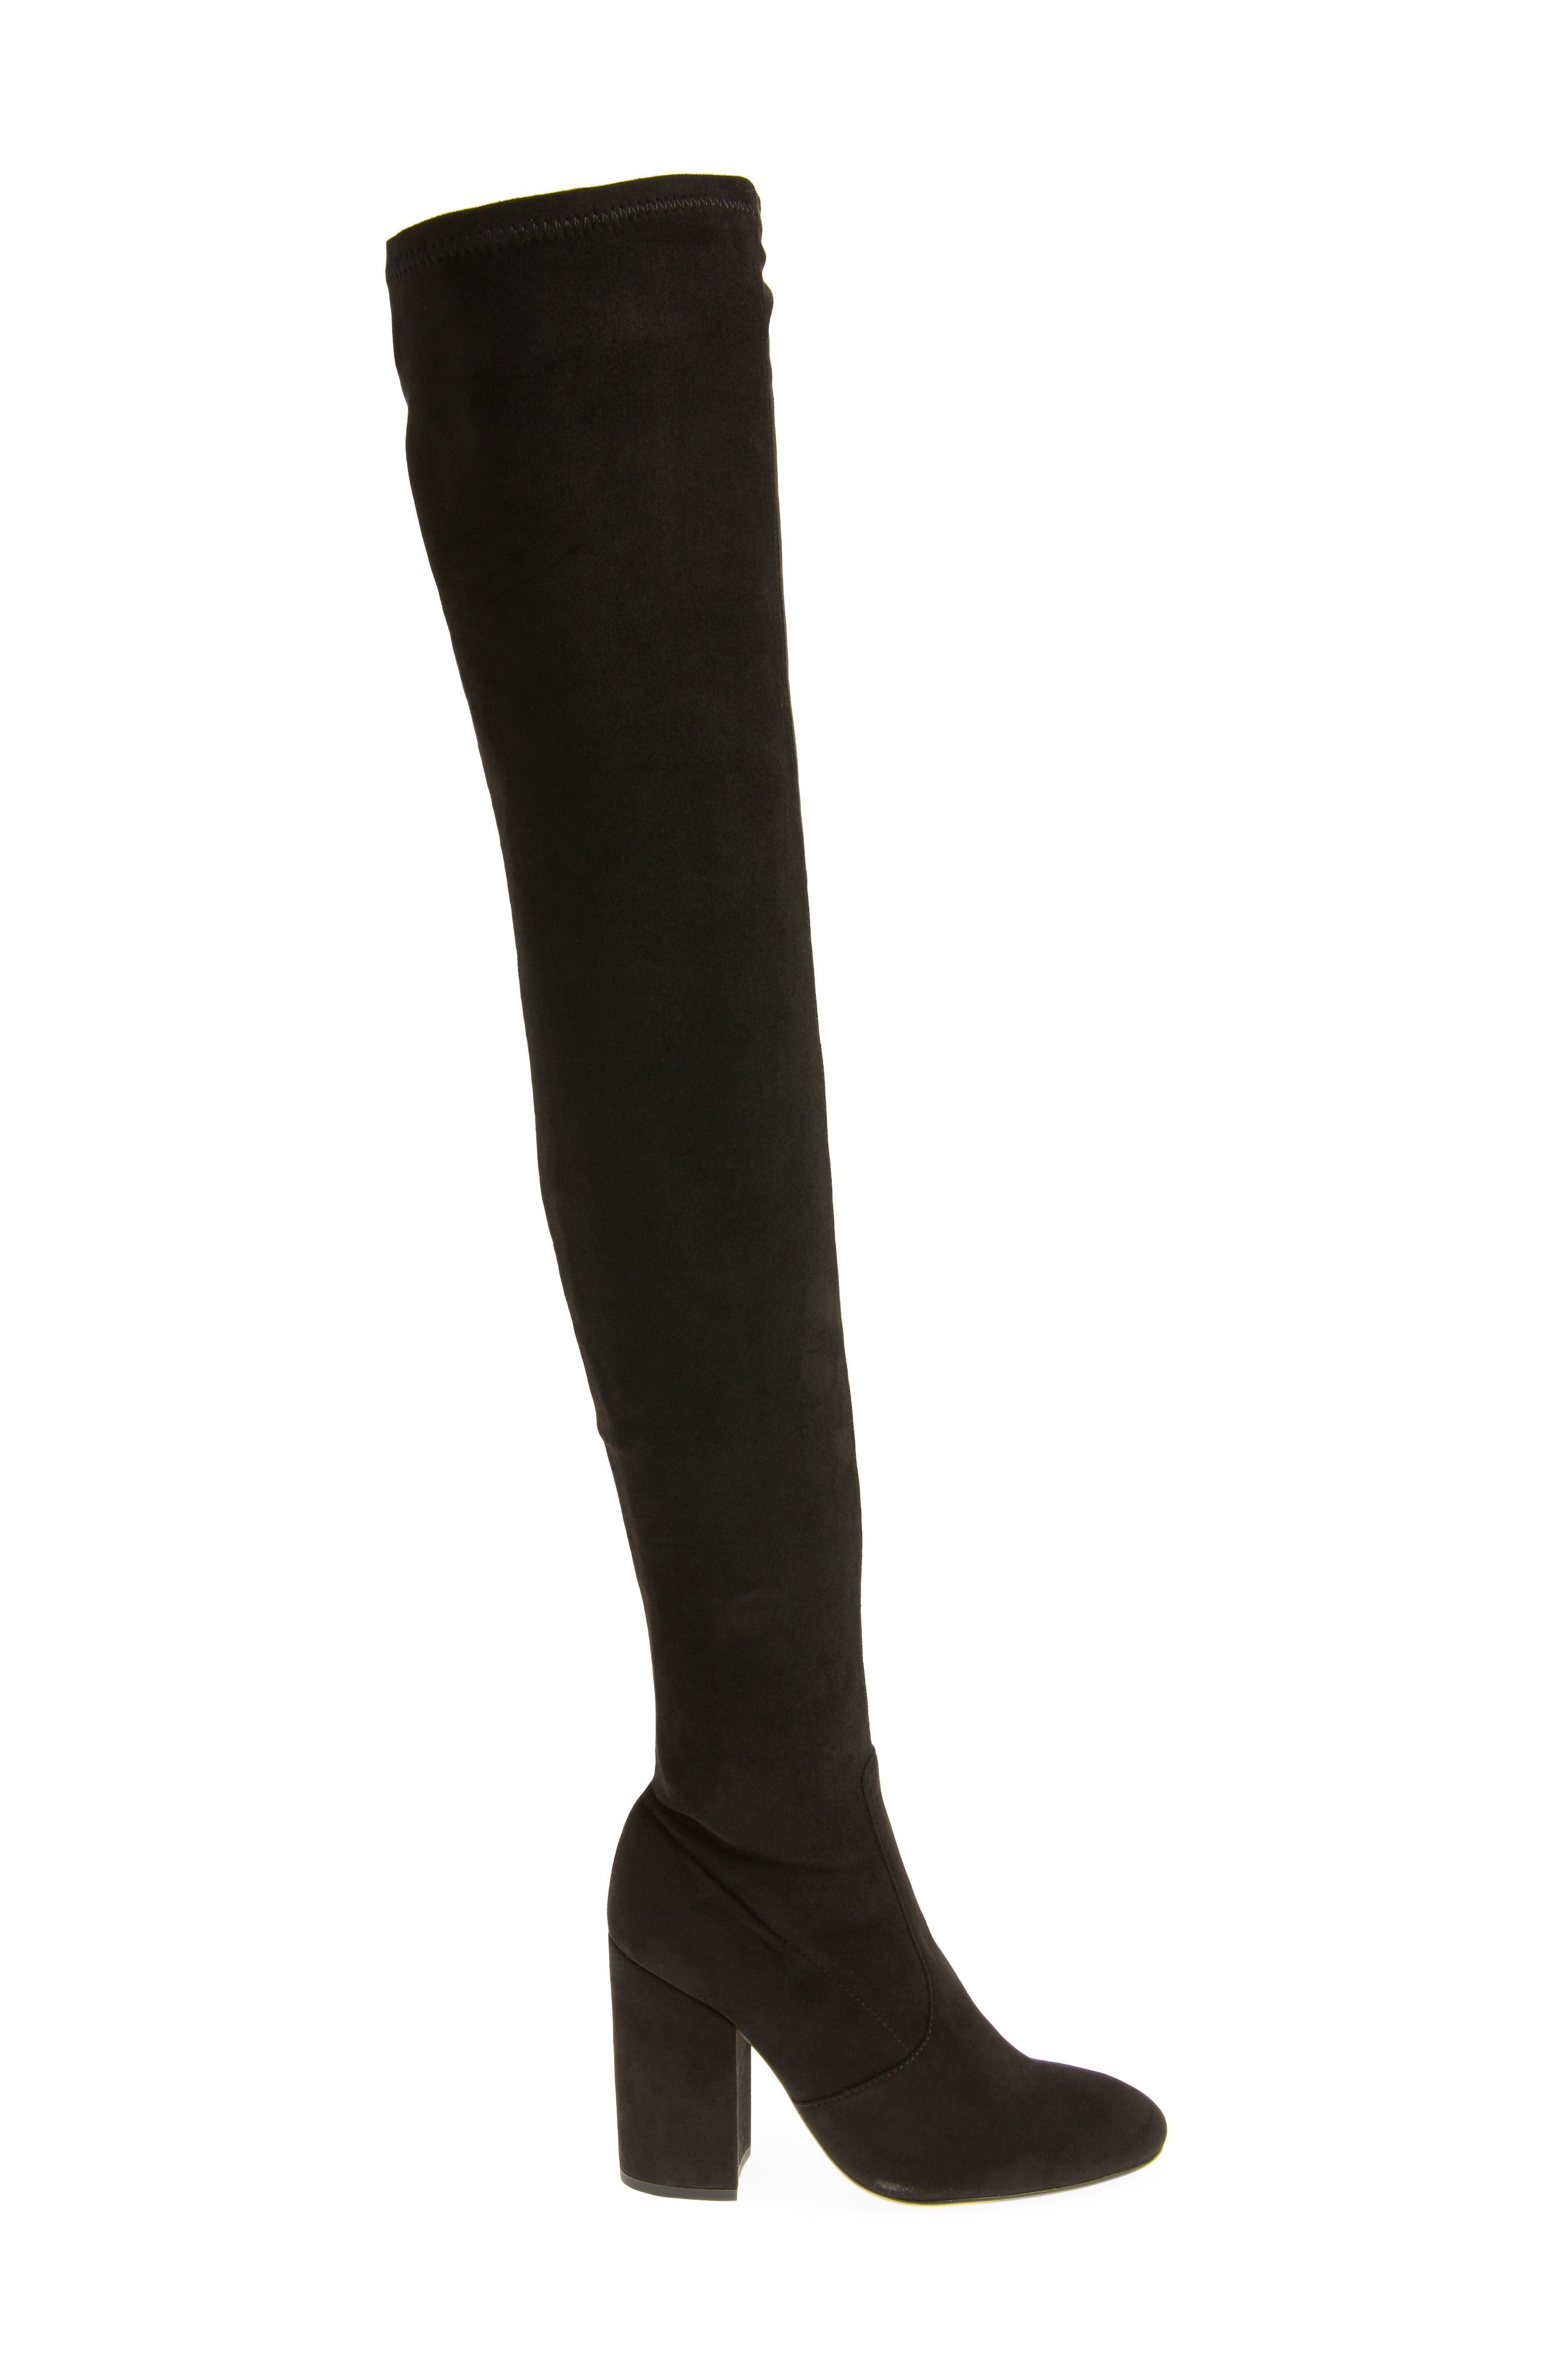 Athens Over the Knee Boot,                             Alternate thumbnail 3, color,                             001